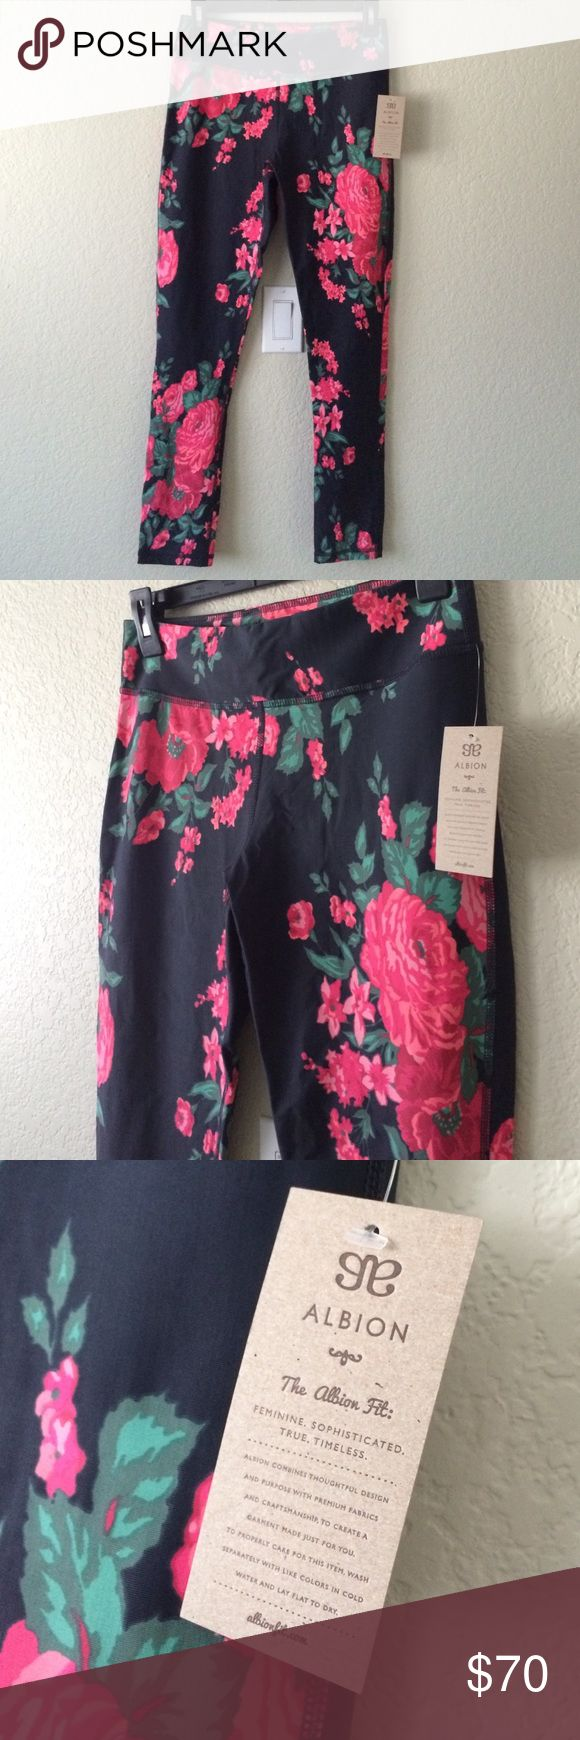 Albion Fit Floral Workout Pants No trades, no holds, no modeling, posh only. Bundle for 20% off. Albion Fit Pants